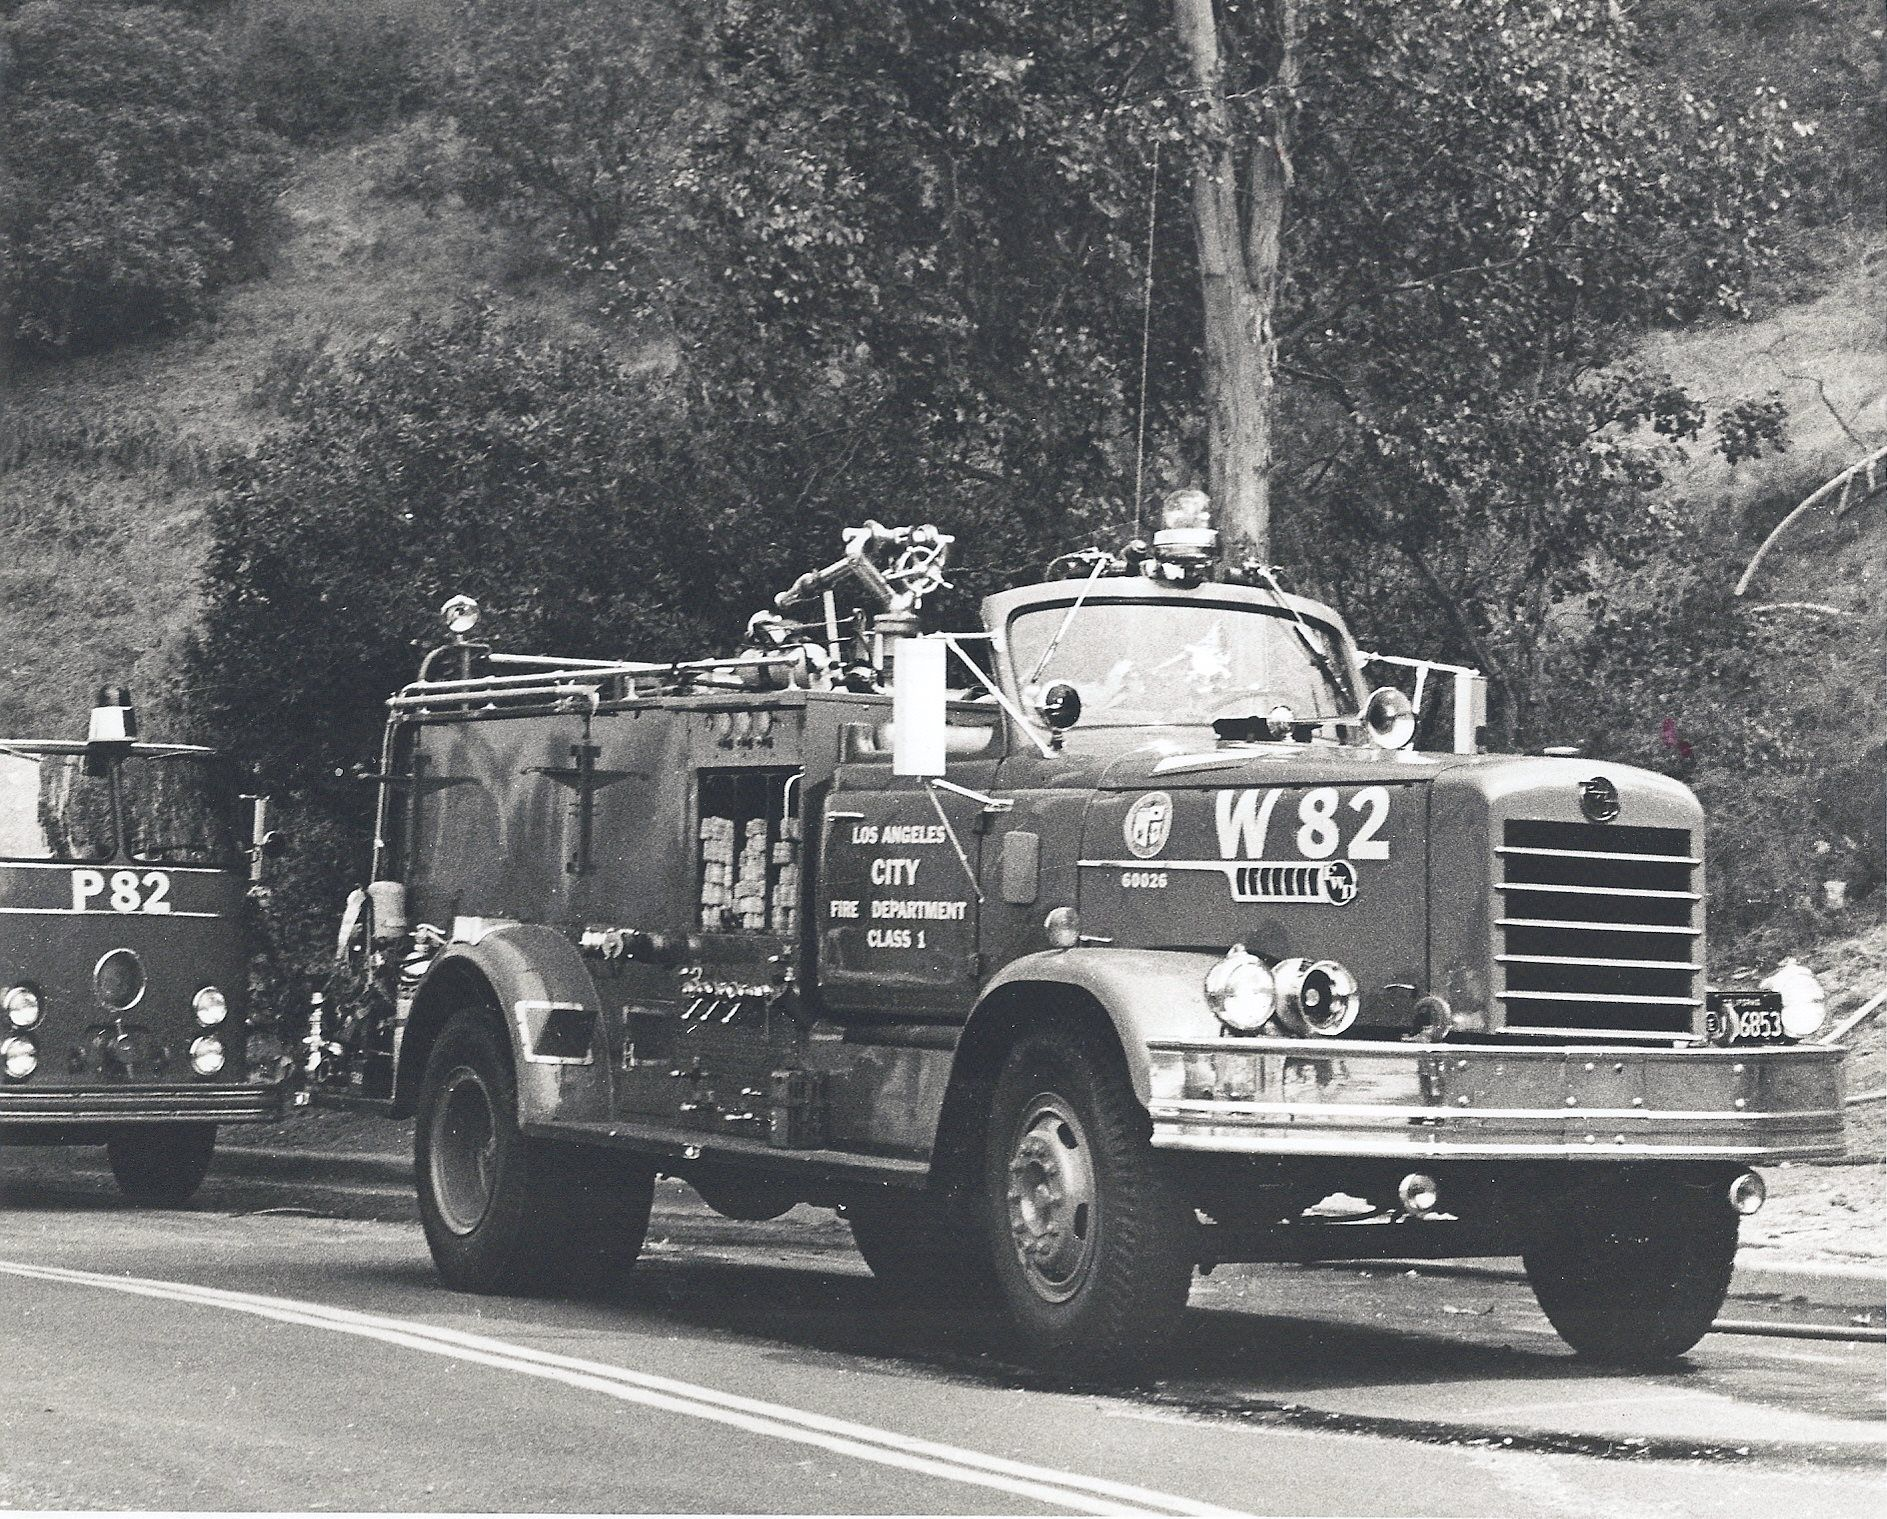 Los angeles city fire department wagon 82